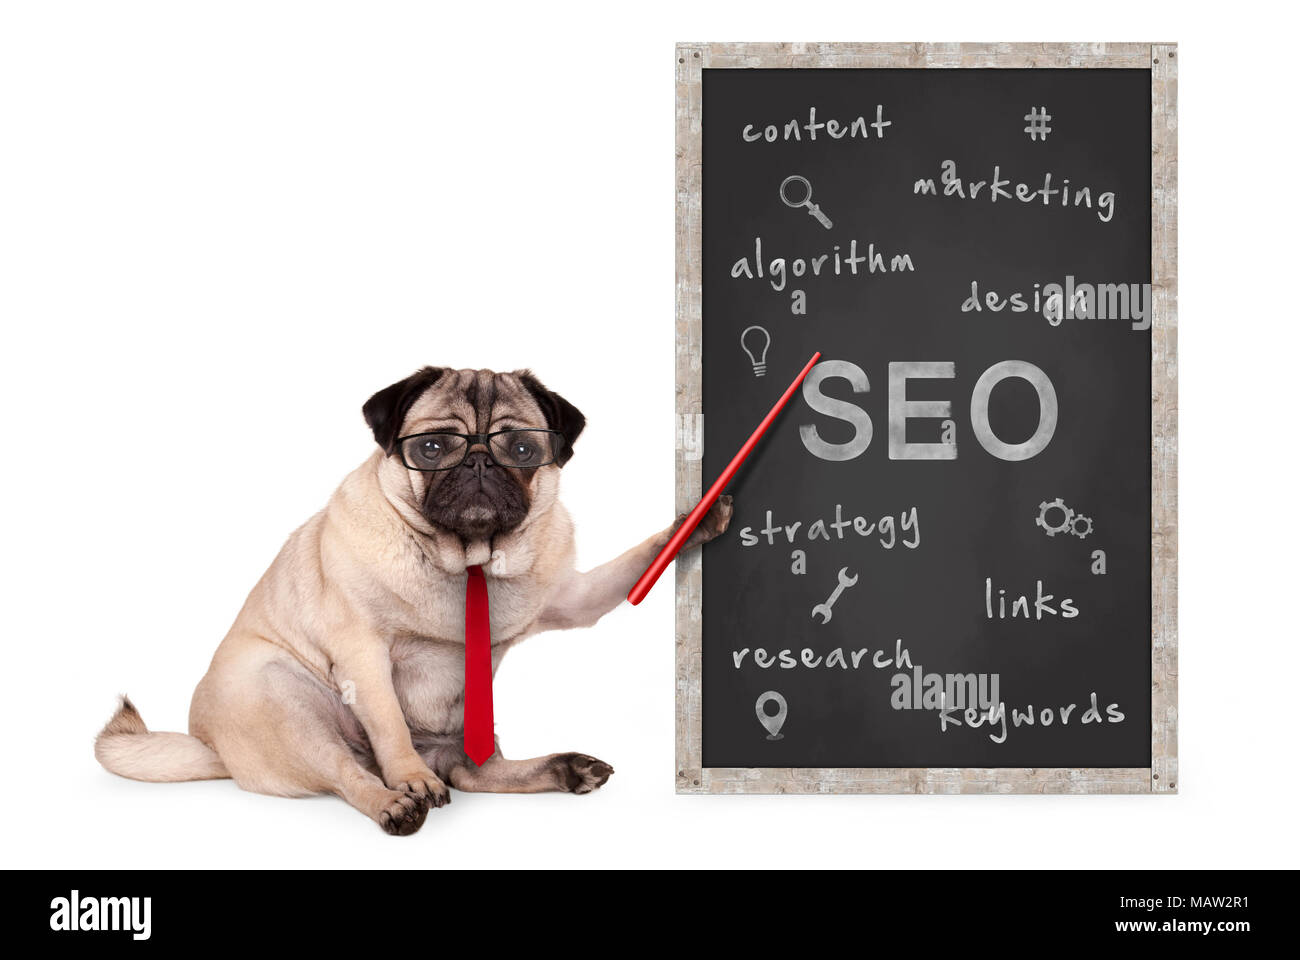 business pug dog holding red pointer, pointing out  search engine optimization, SEO, performance strategy, hand drawn on chalkboard, isolated on white Stock Photo